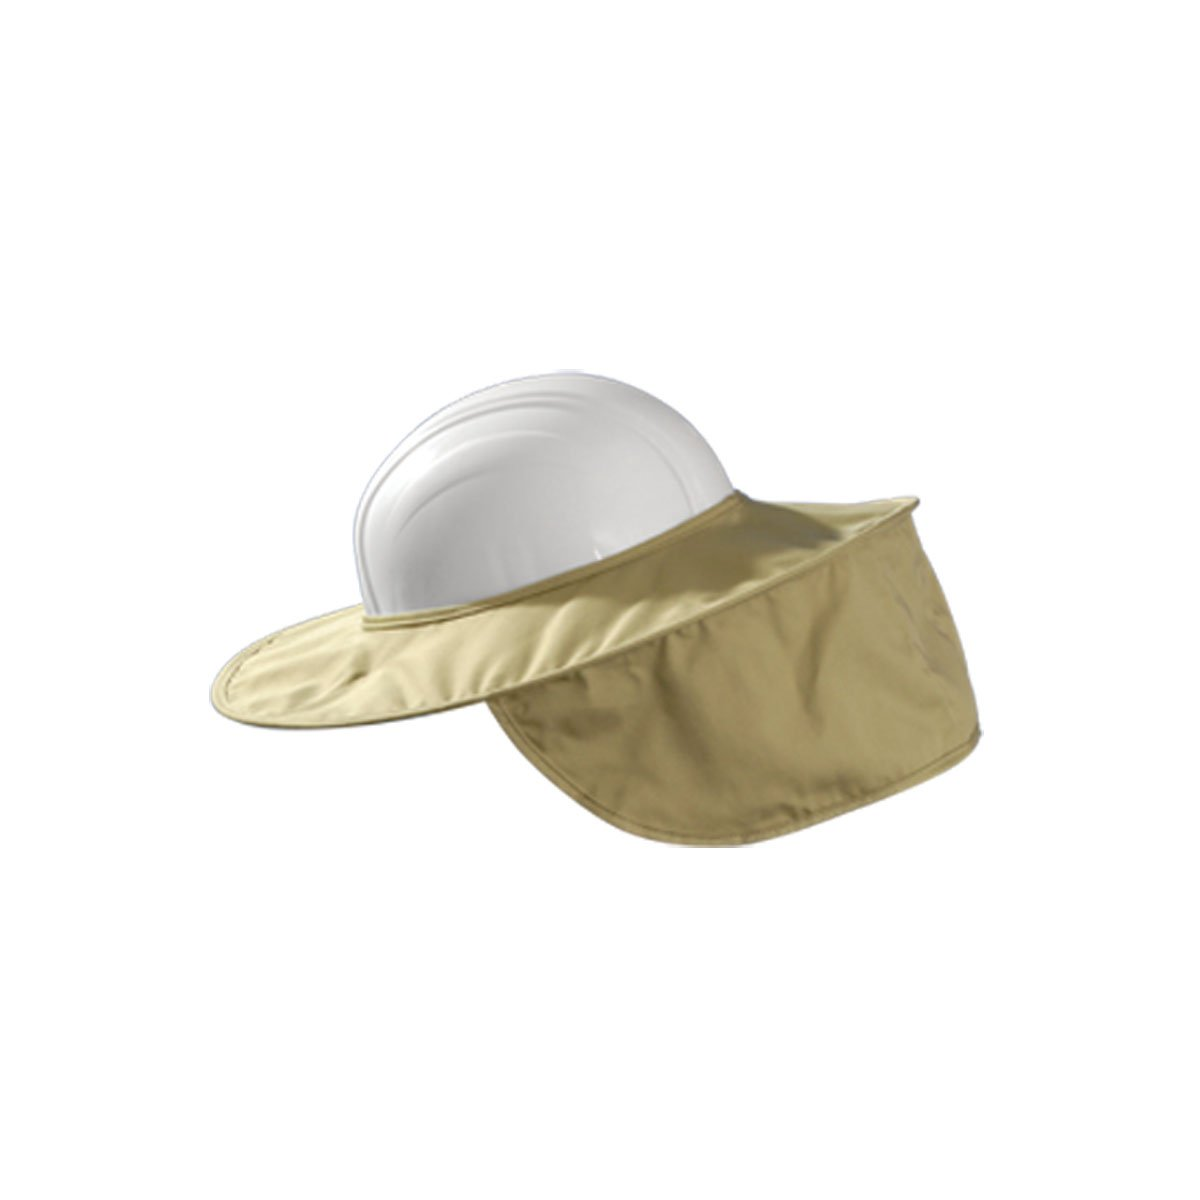 8de3973f3 Occunomix Stow Away Hard Hat Shades Stow Away Hard Hat Shade Khaki ...